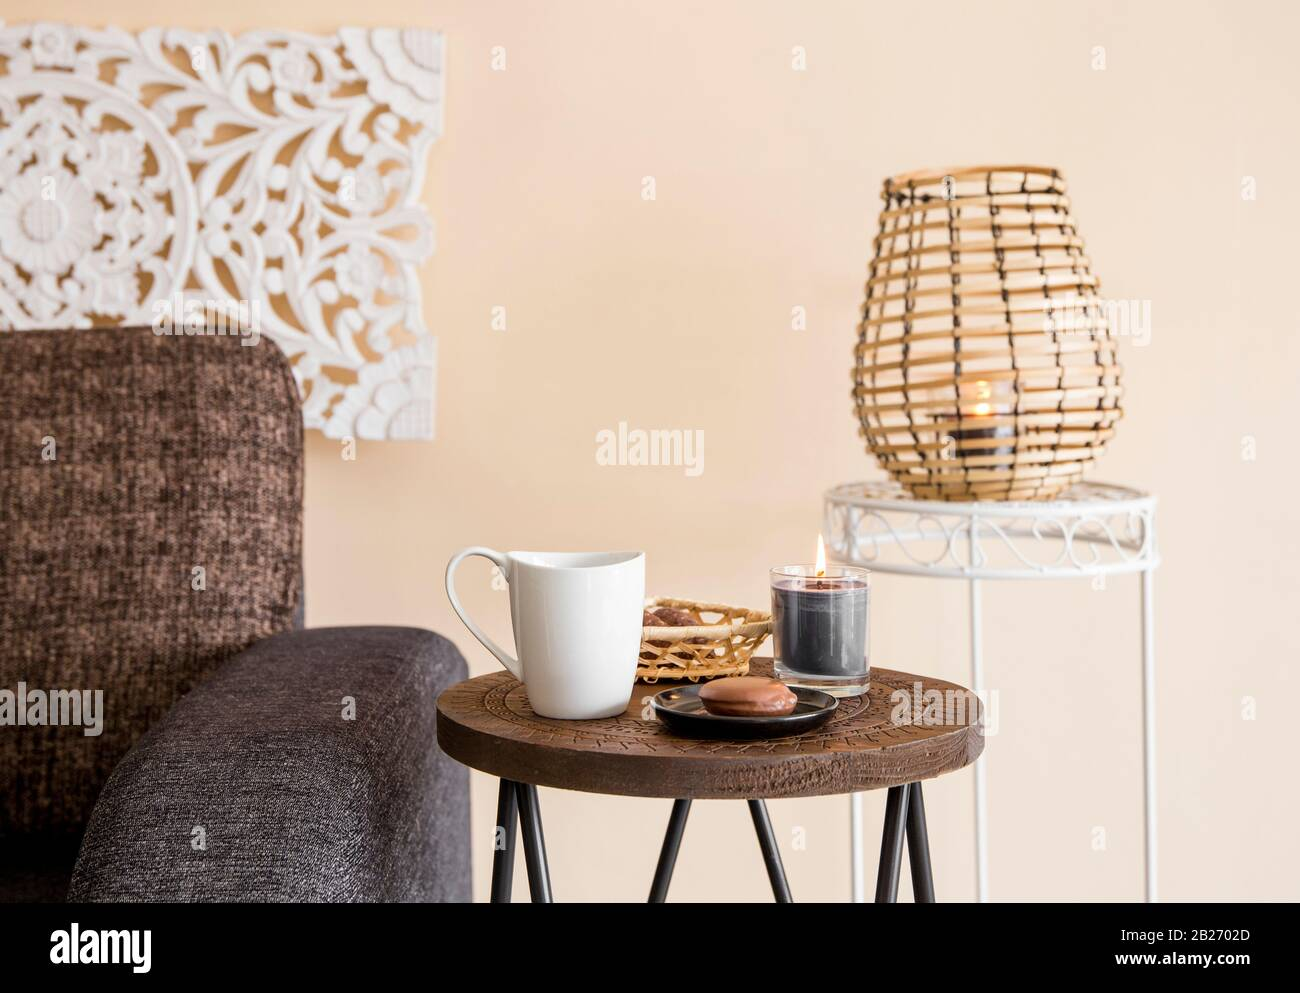 Modern Minimalist Home Living Room With Oriental Asia Style Decorative Elements Carved Wall Panel Bamboo Candle Lantern Small Wooden Side Table Stock Photo Alamy